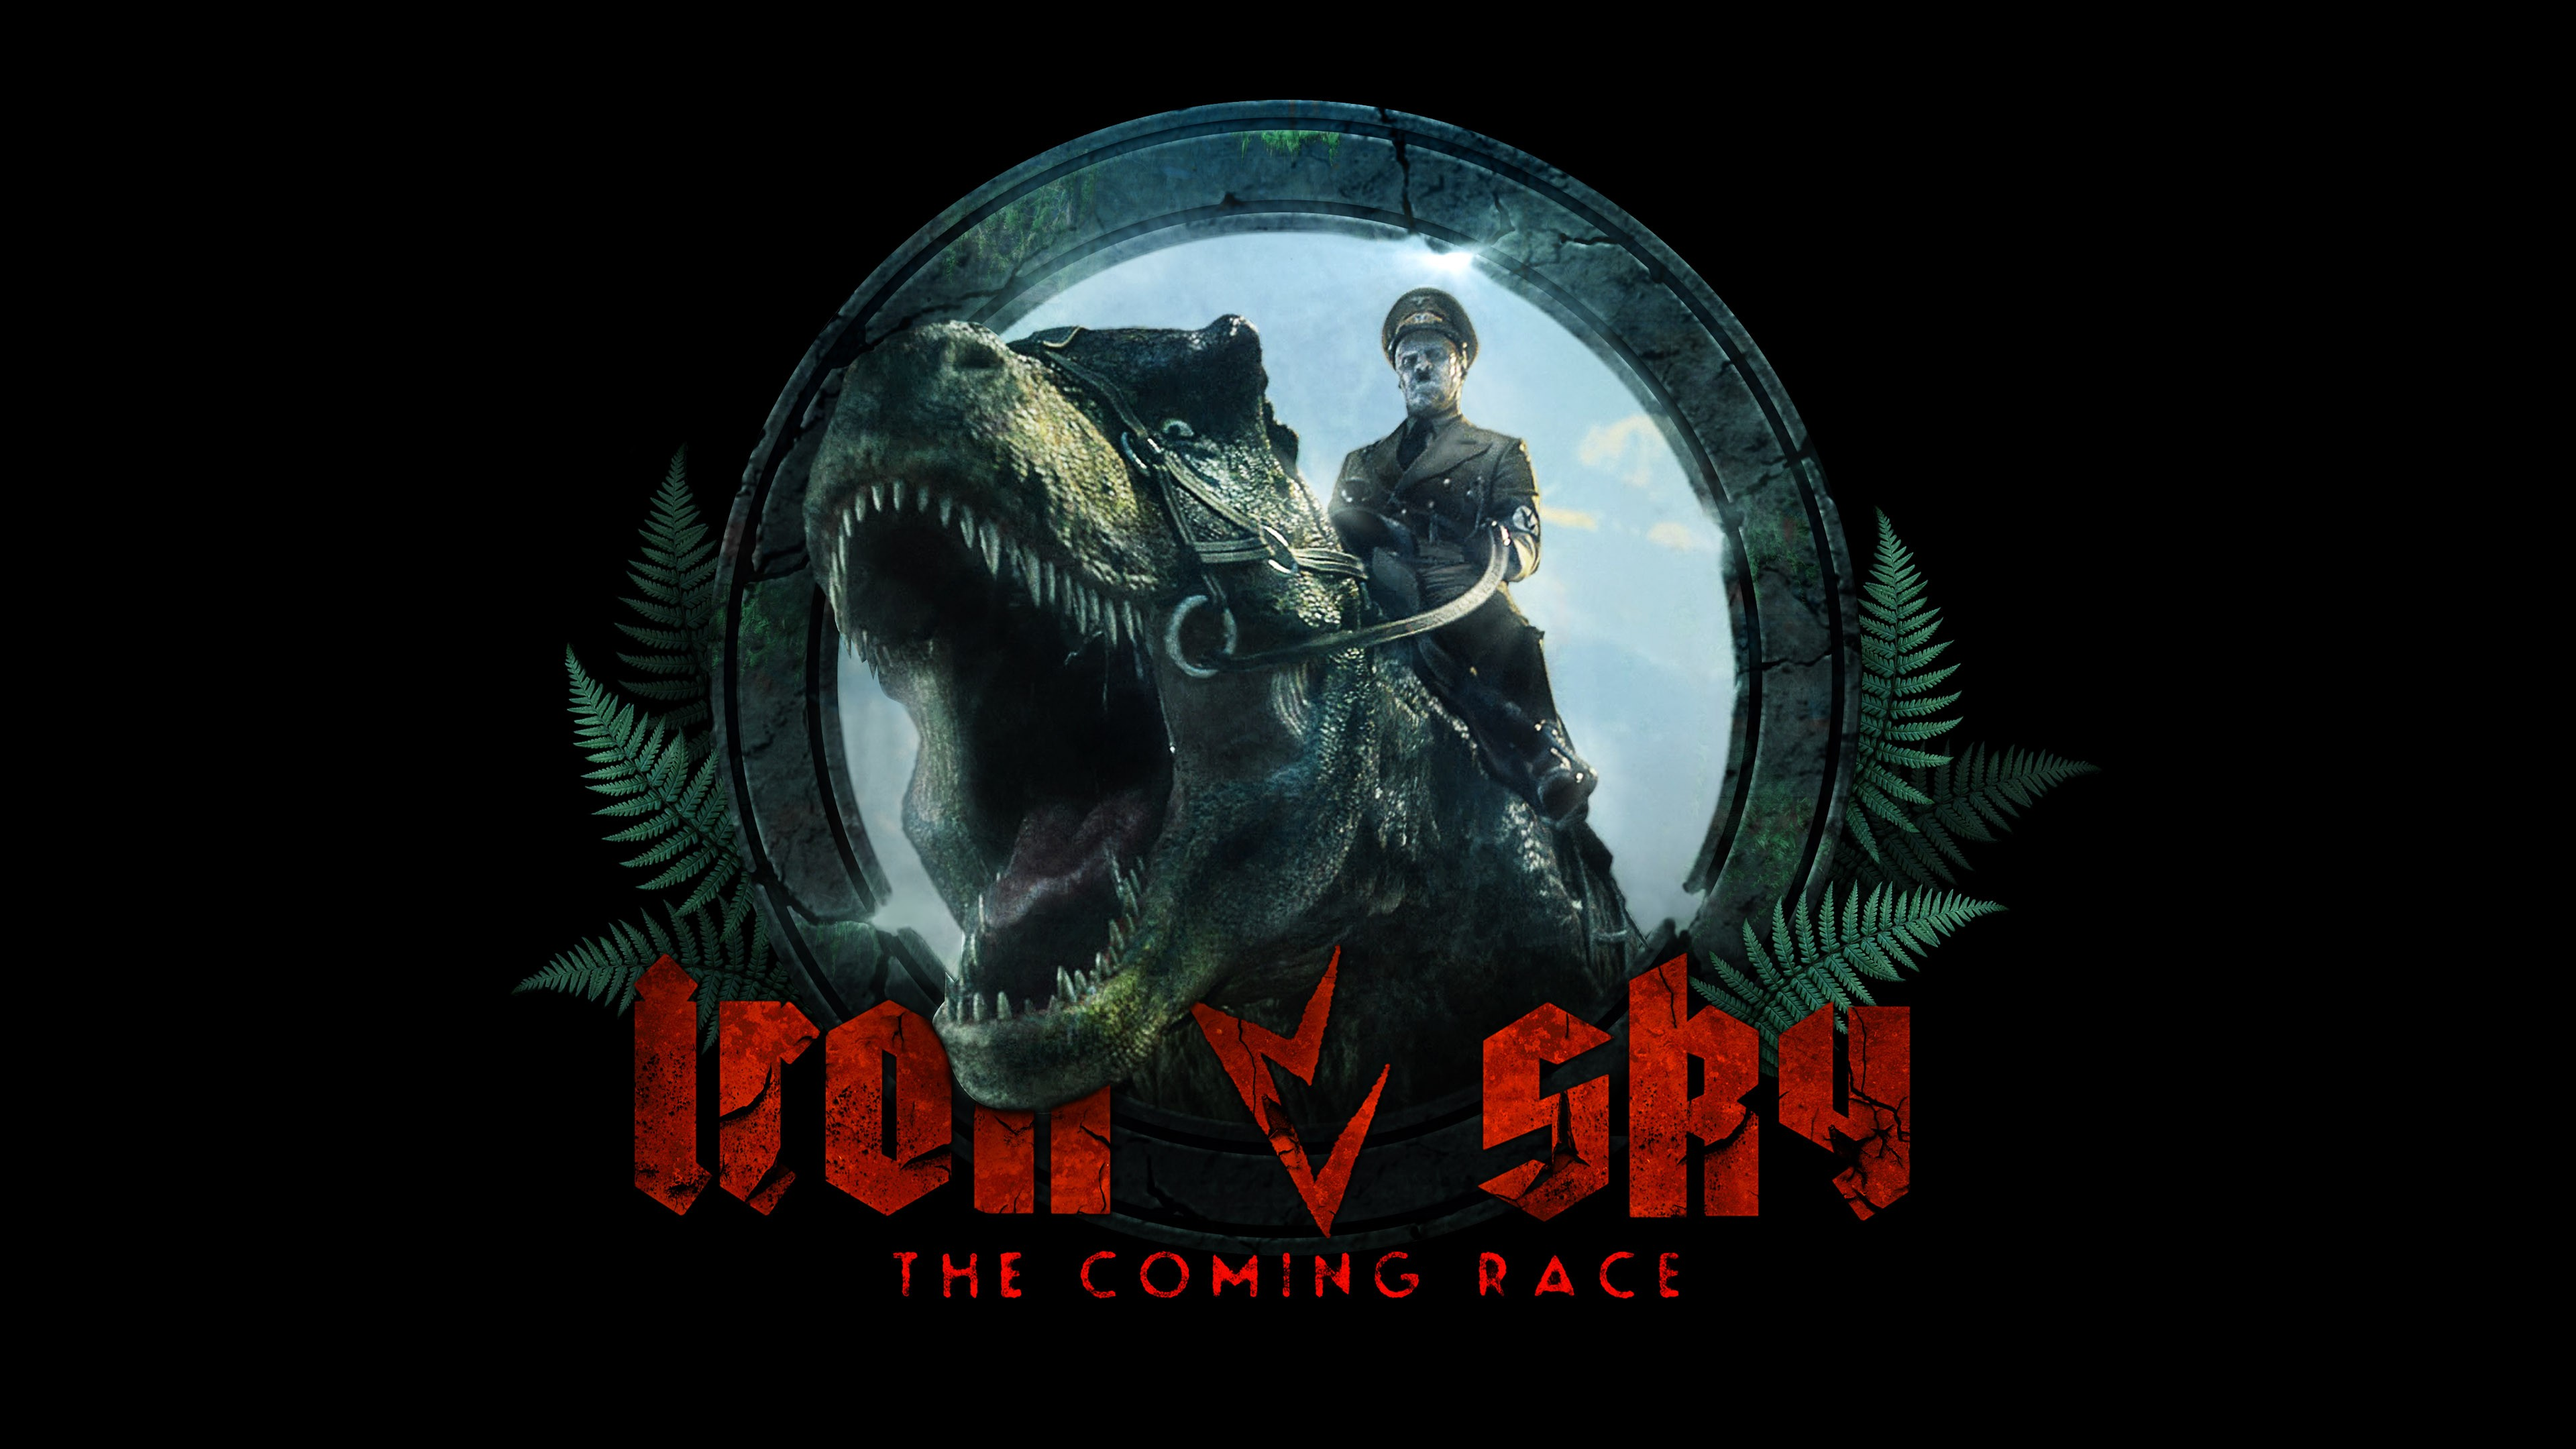 Wallpaper Iron Sky The Coming Race Poster 4k Movies 15991